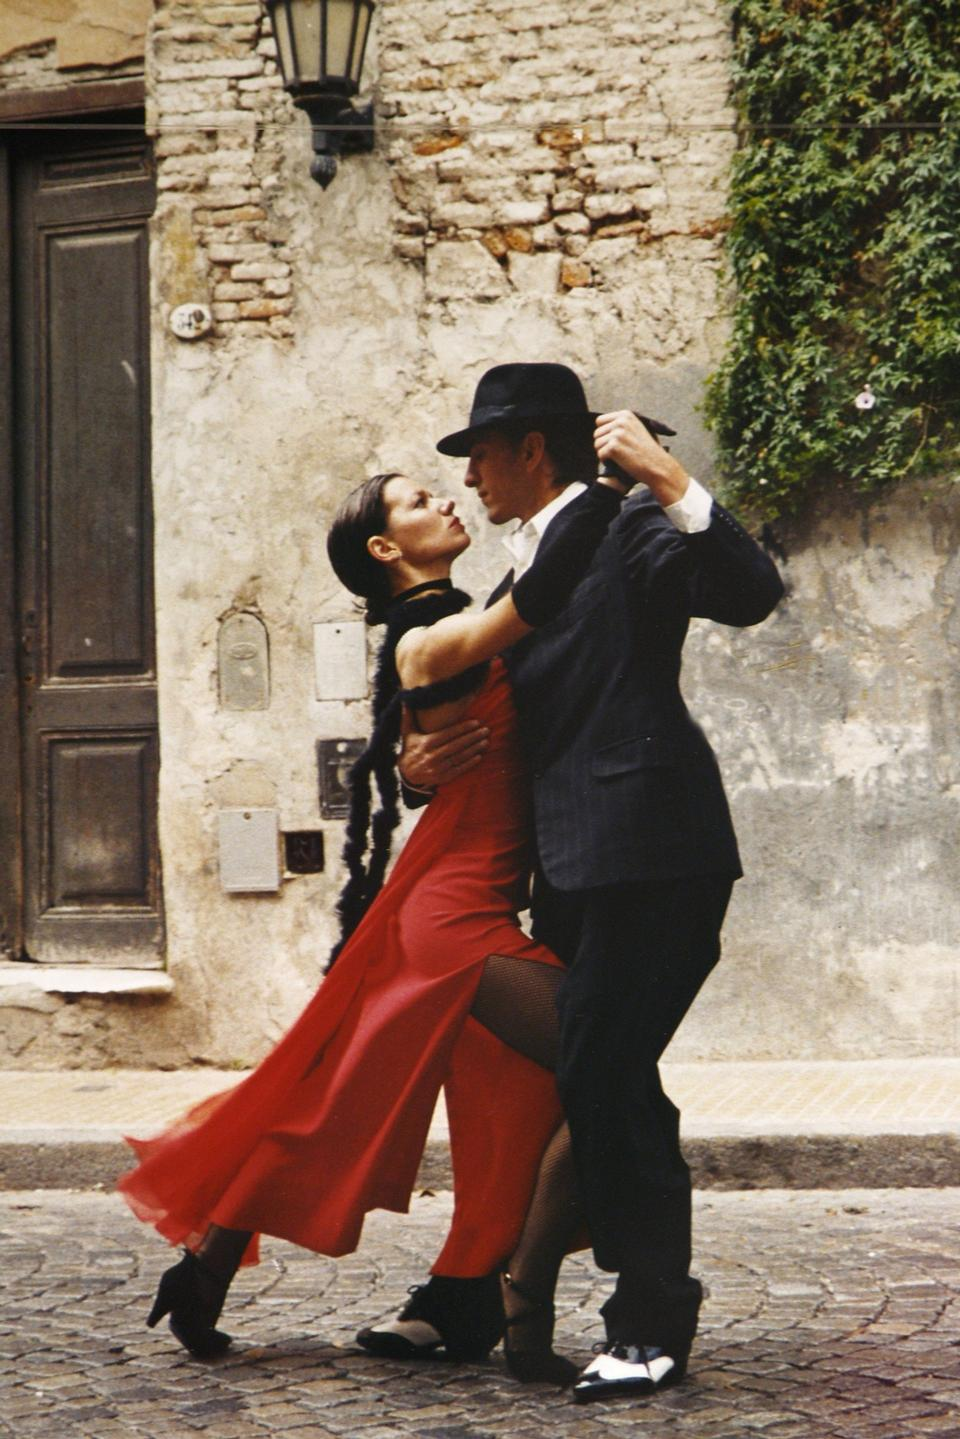 Free A man and a woman dancing argentinian tango